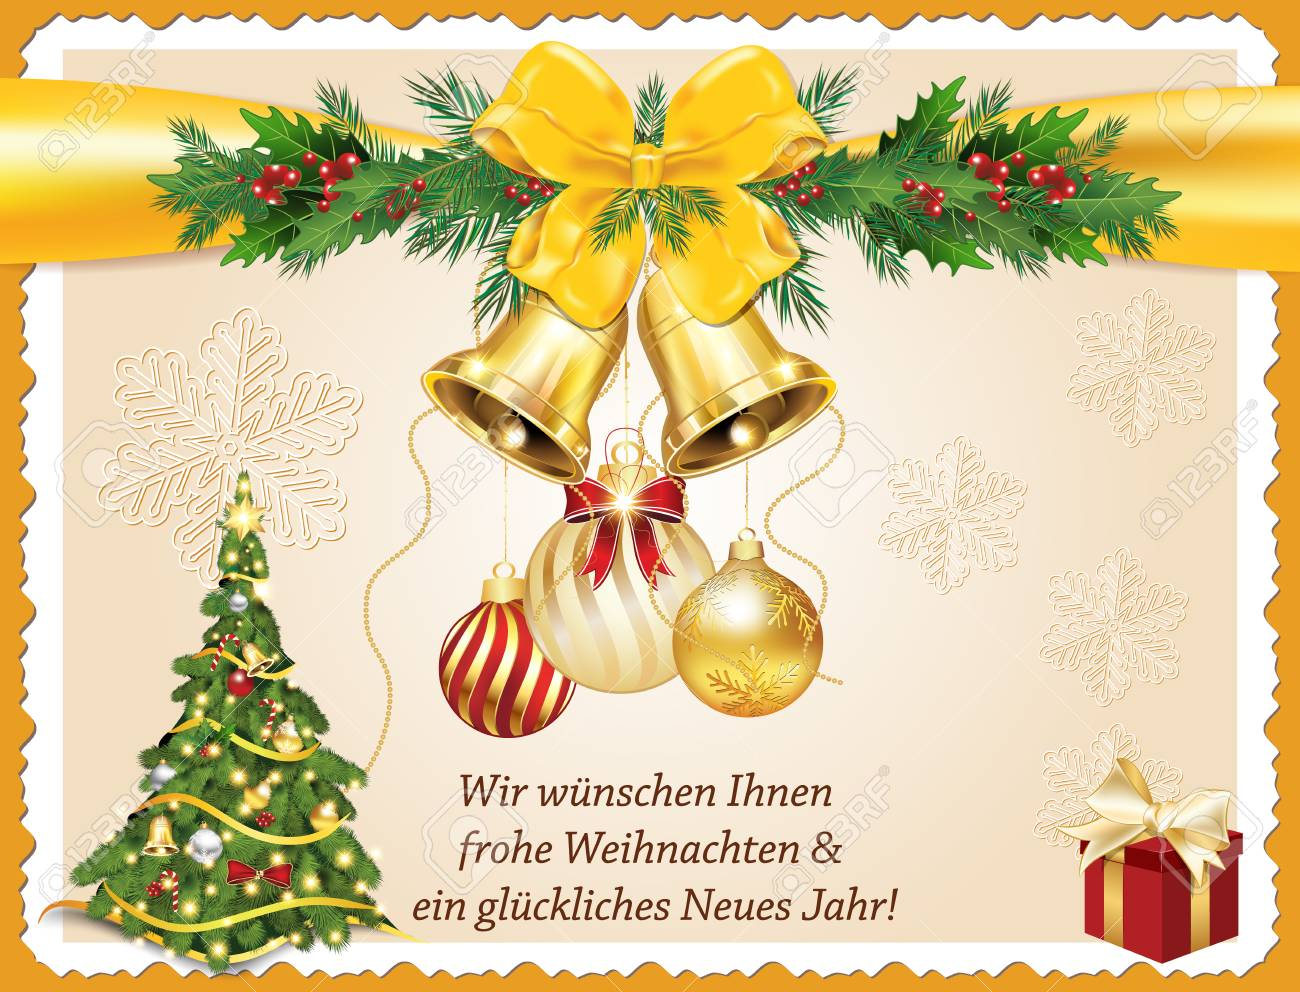 German Greeting Card For Christmas And New Year Merry Christmas